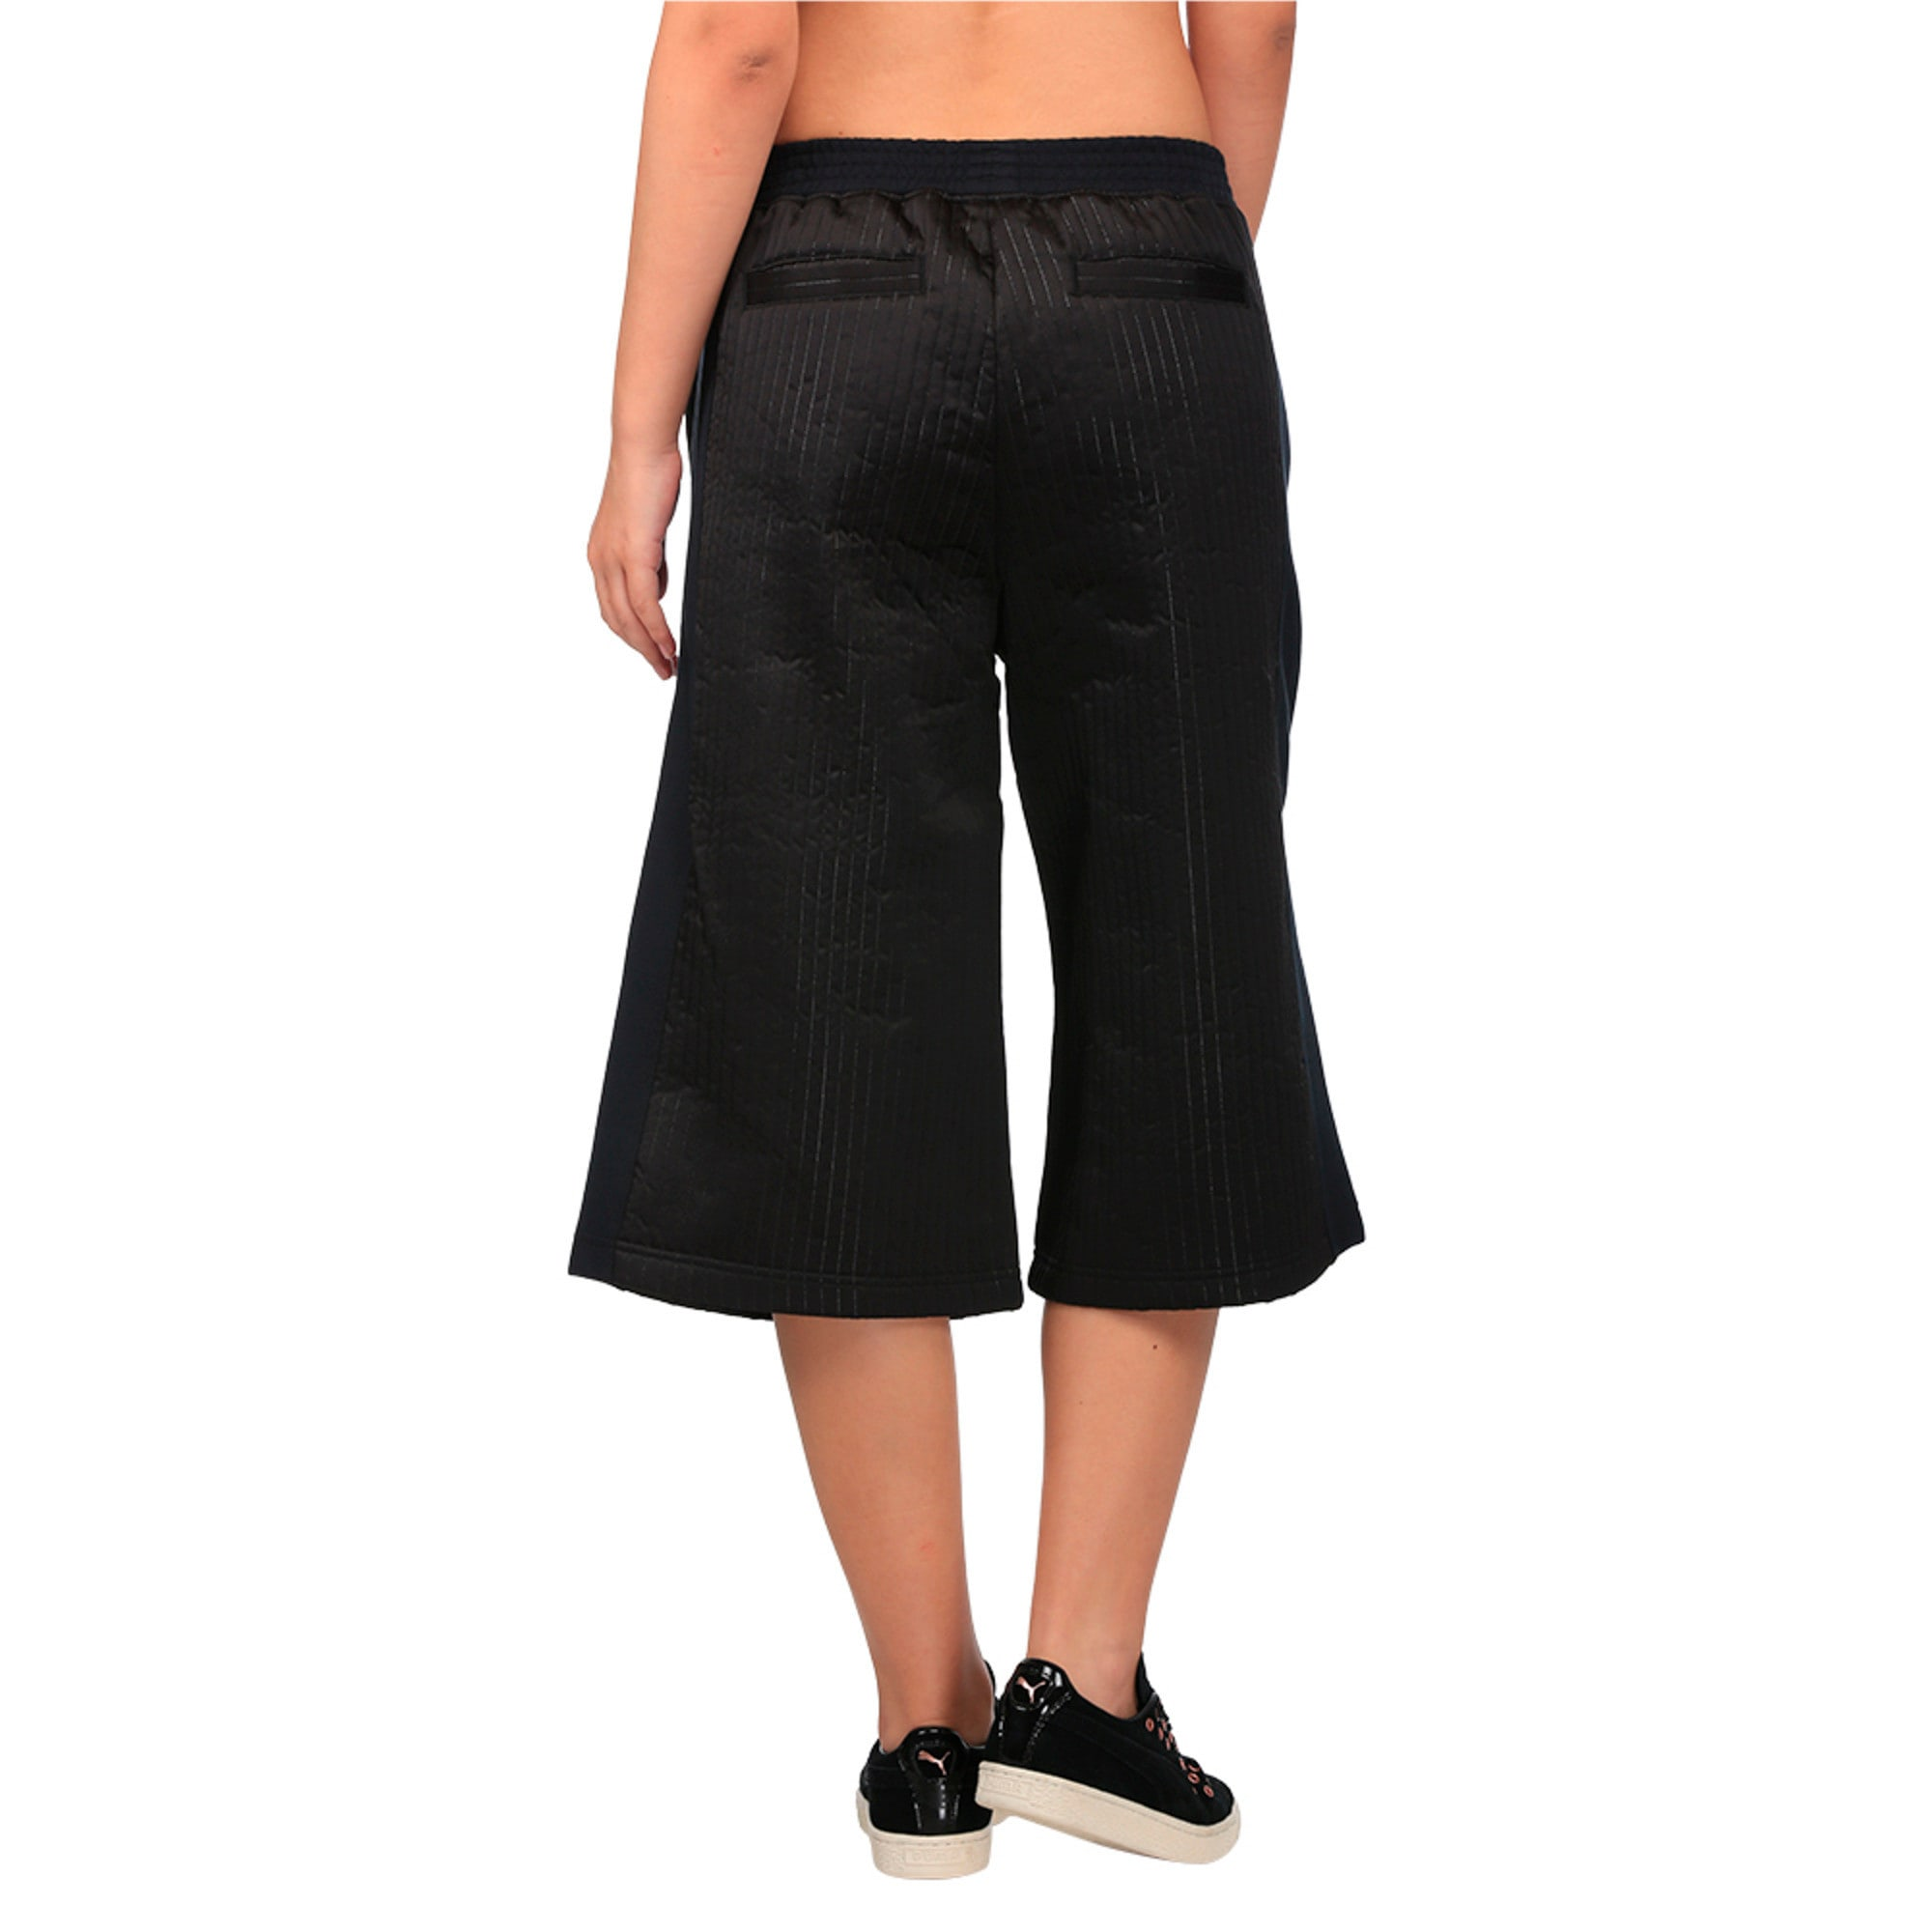 Thumbnail 2 of Evolution Women's Quilted Culottes, Puma Black, medium-IND